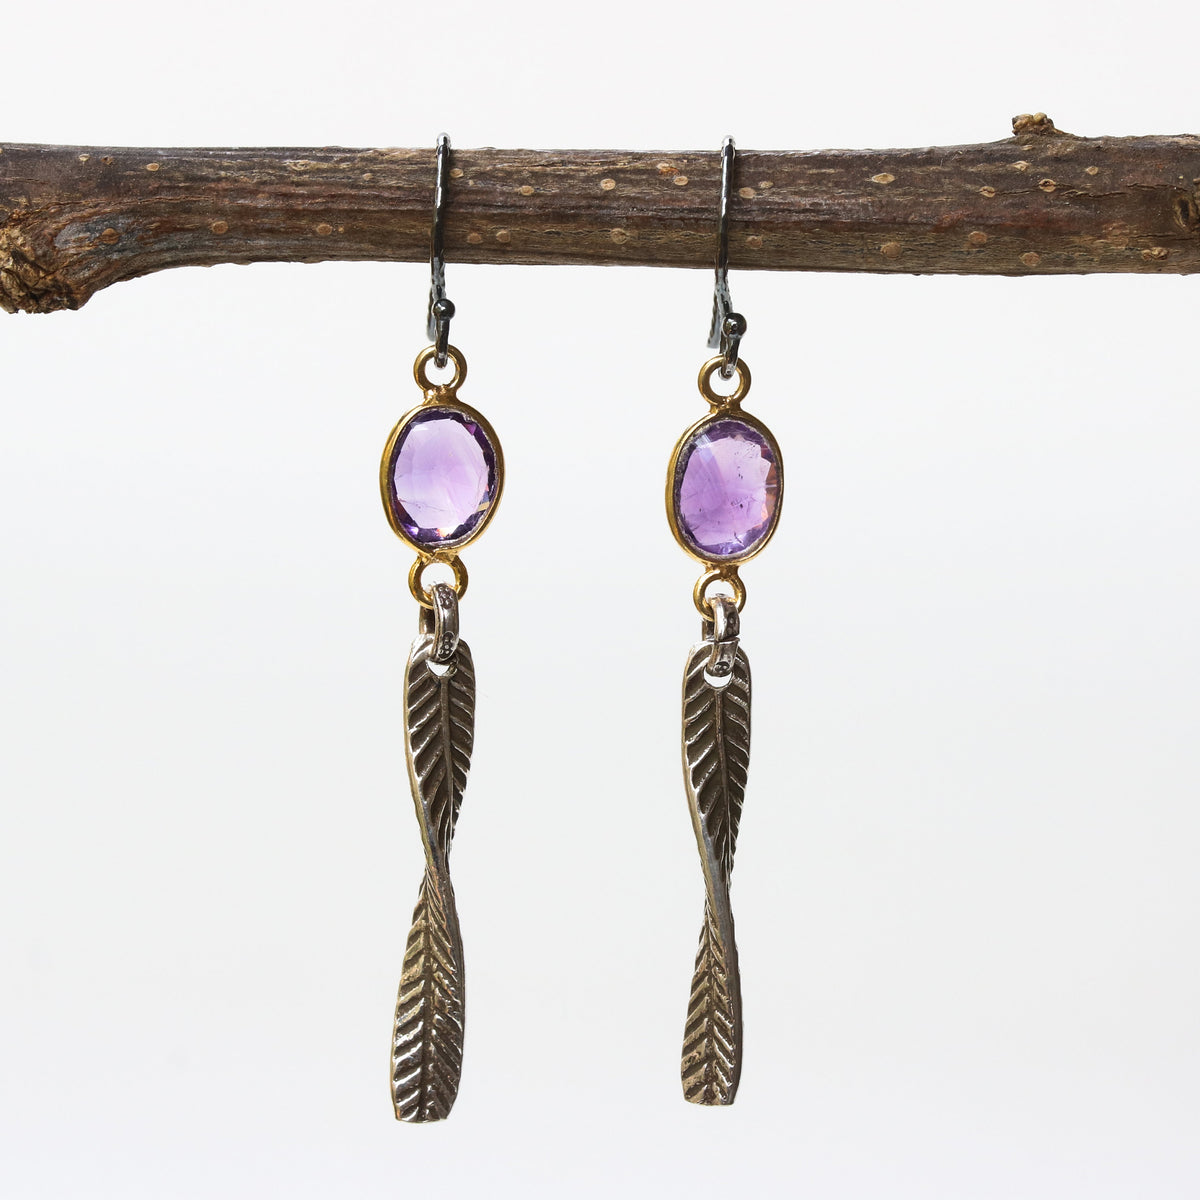 Amethyst earrings in gold plated bezel setting and silver leaf on sterling silver hook style